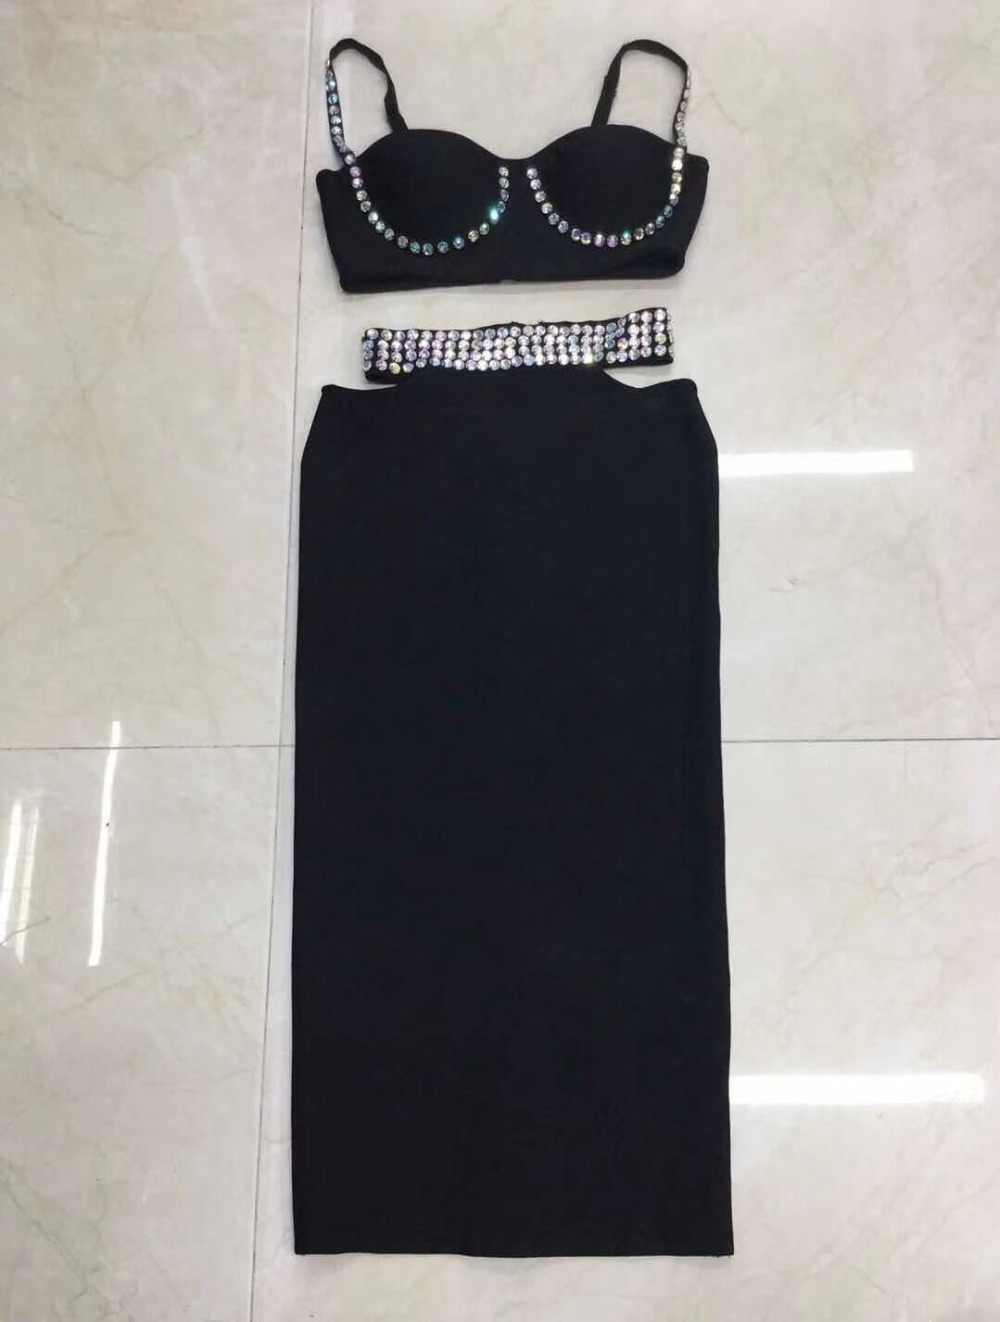 2019 new Black suspender beaded 2 piece set bandage dress  Sexy evening Party Bodycon wholesale womens clothing autumn spring